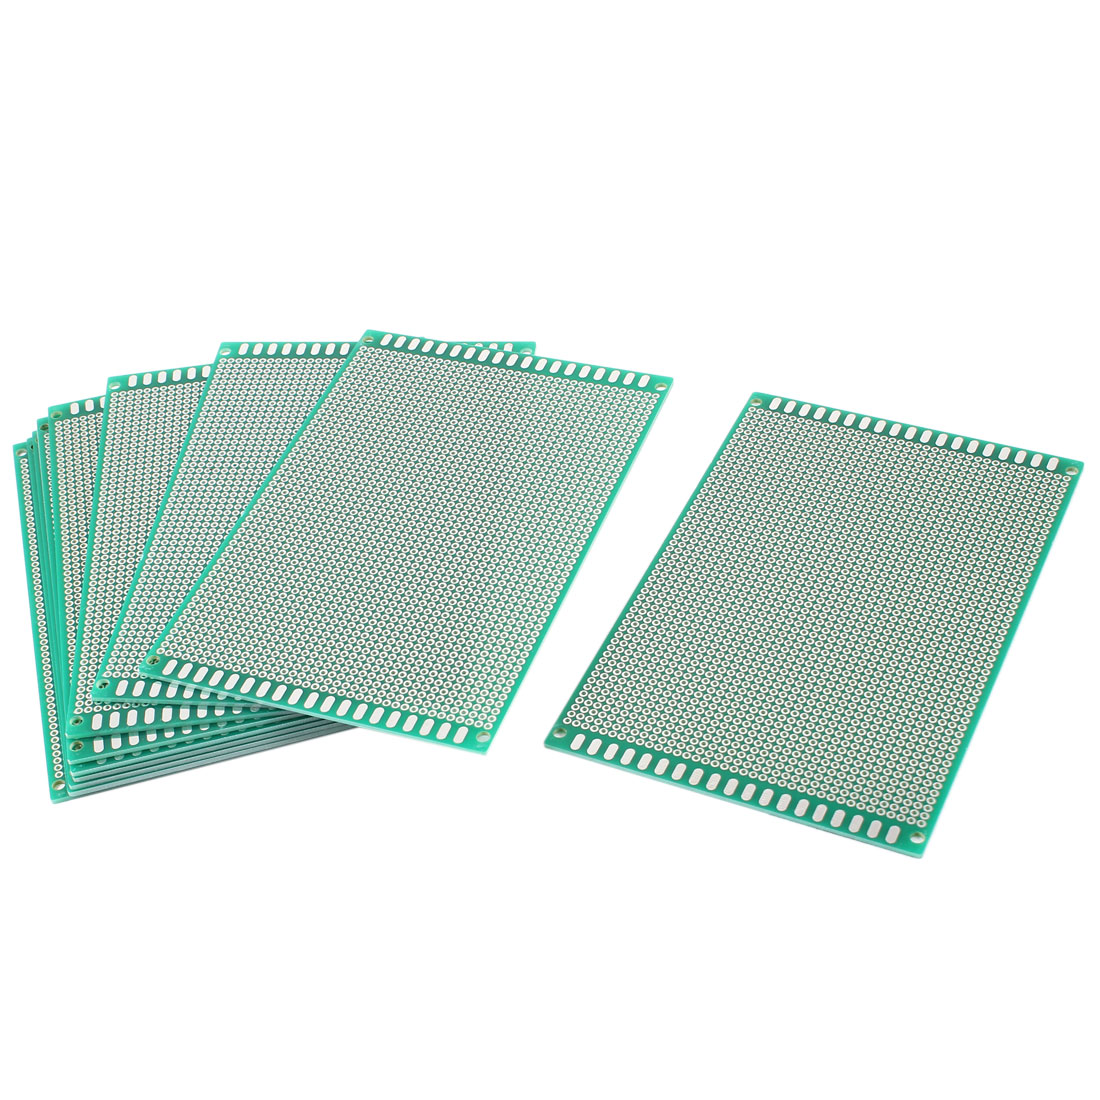 10 Pcs DIY Single Side Tinned Prototyping PCB Circuit Universal Board 10cmx15cm